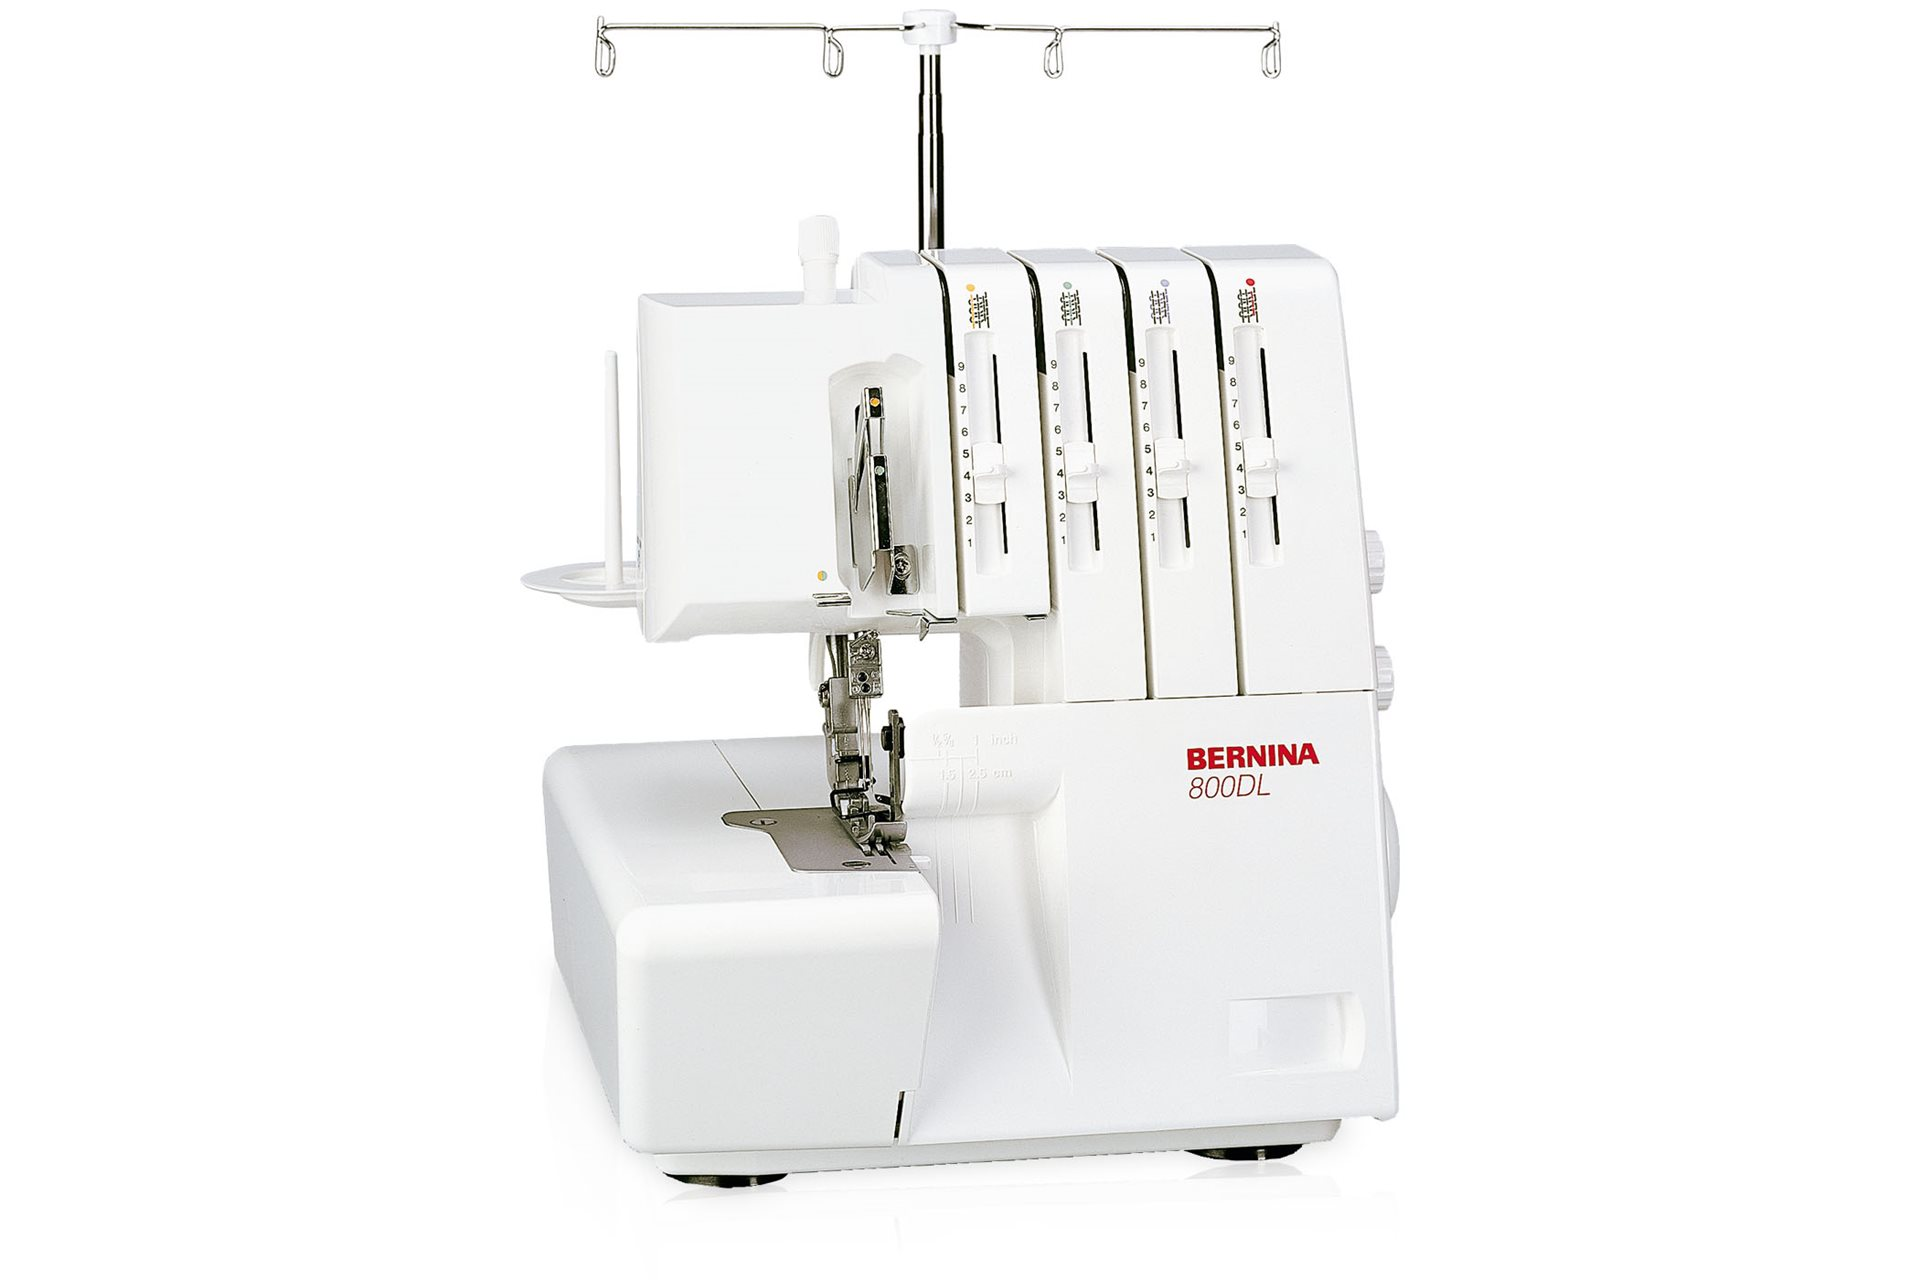 BERNINA 800DL